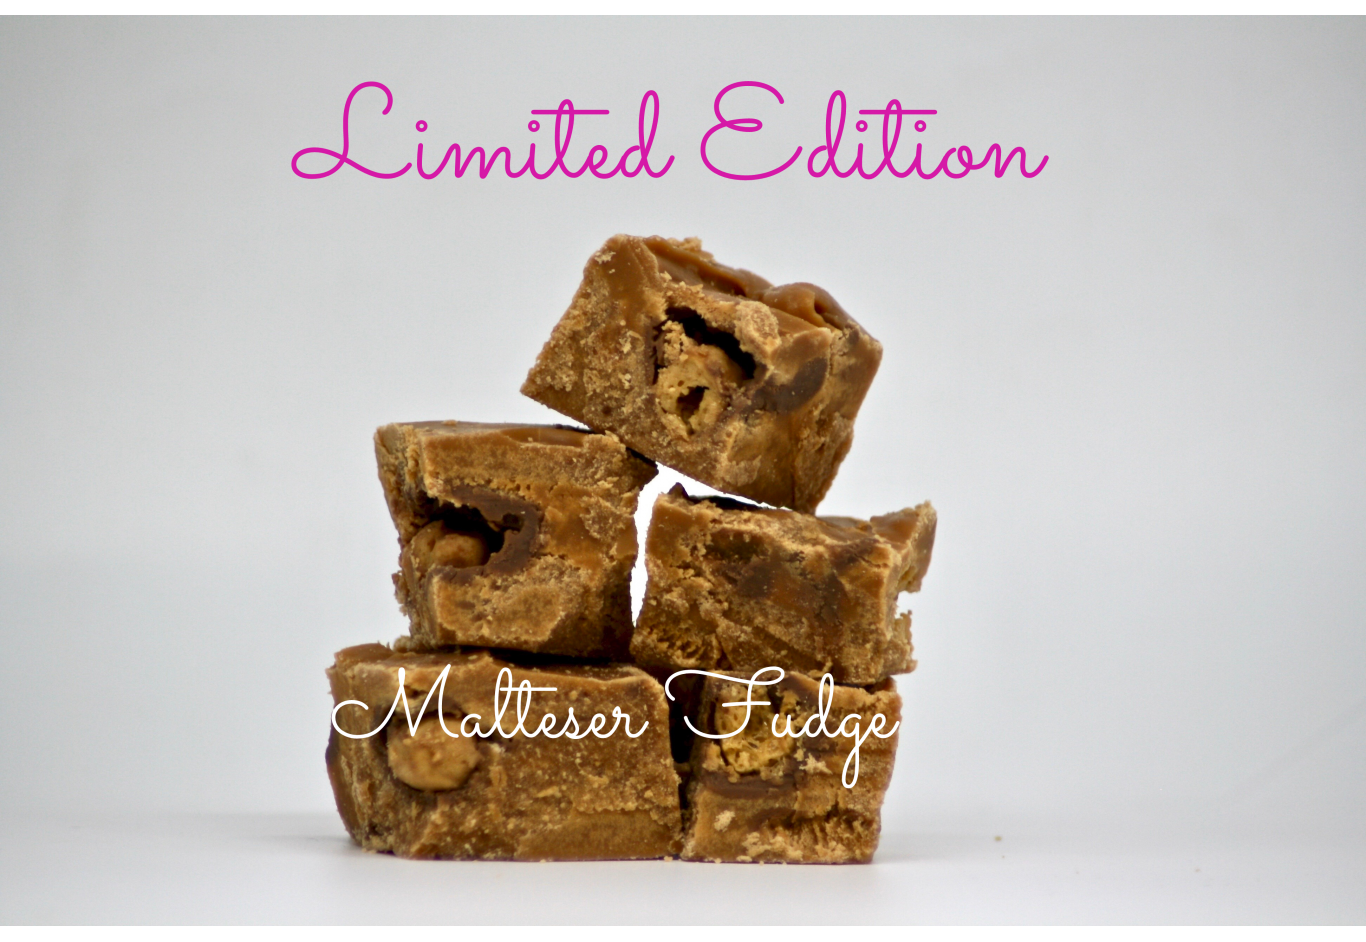 Limited Edition Malteser Fudge Gift Bag